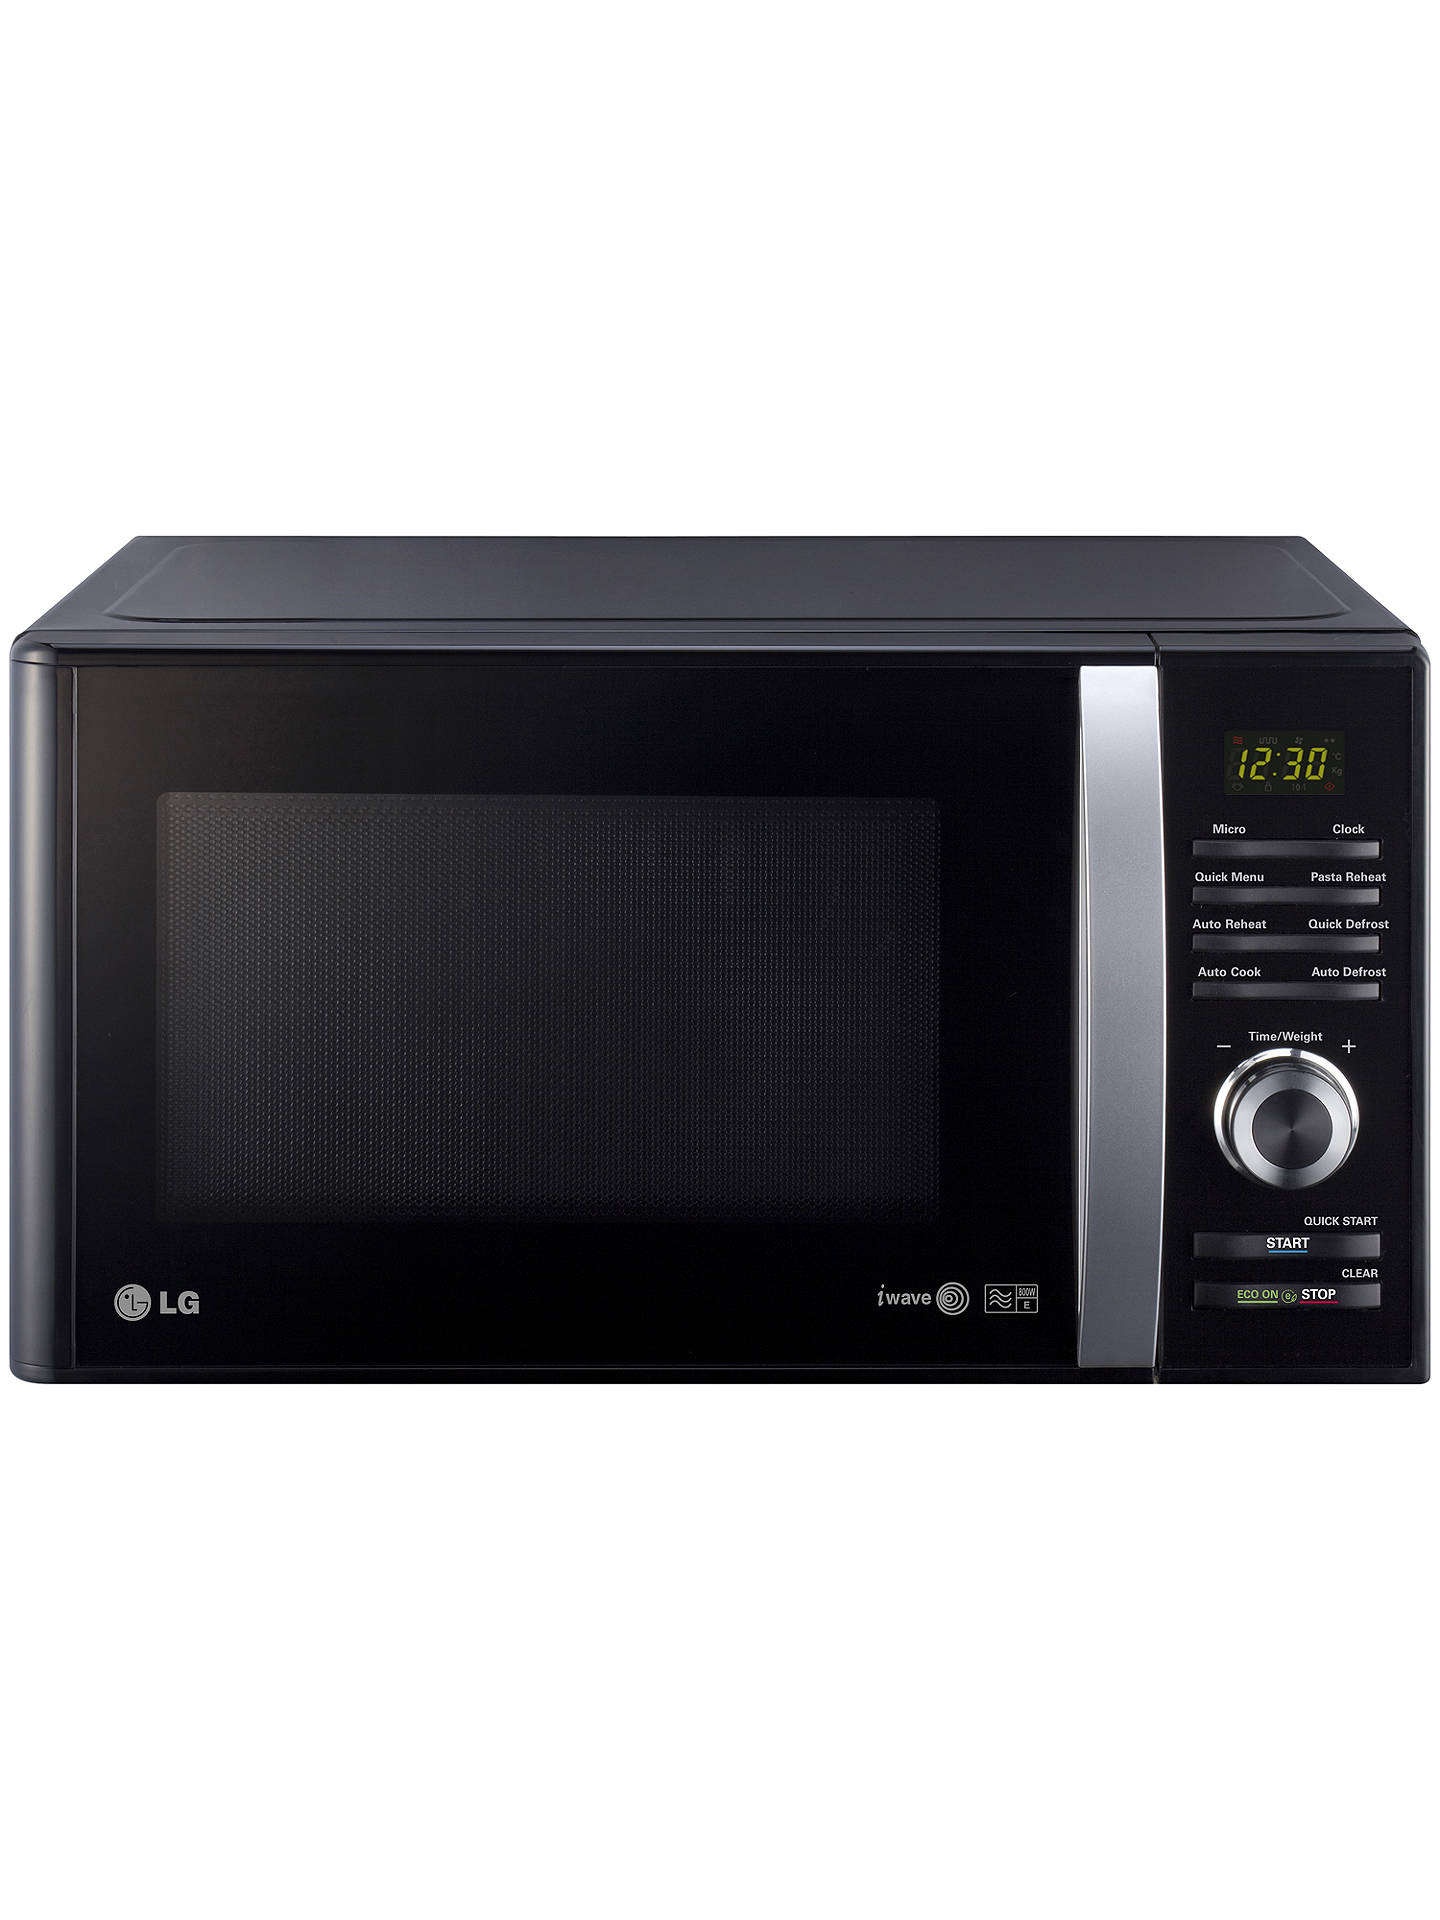 b78363bb314 Buy LG MS2382B Microwave Oven